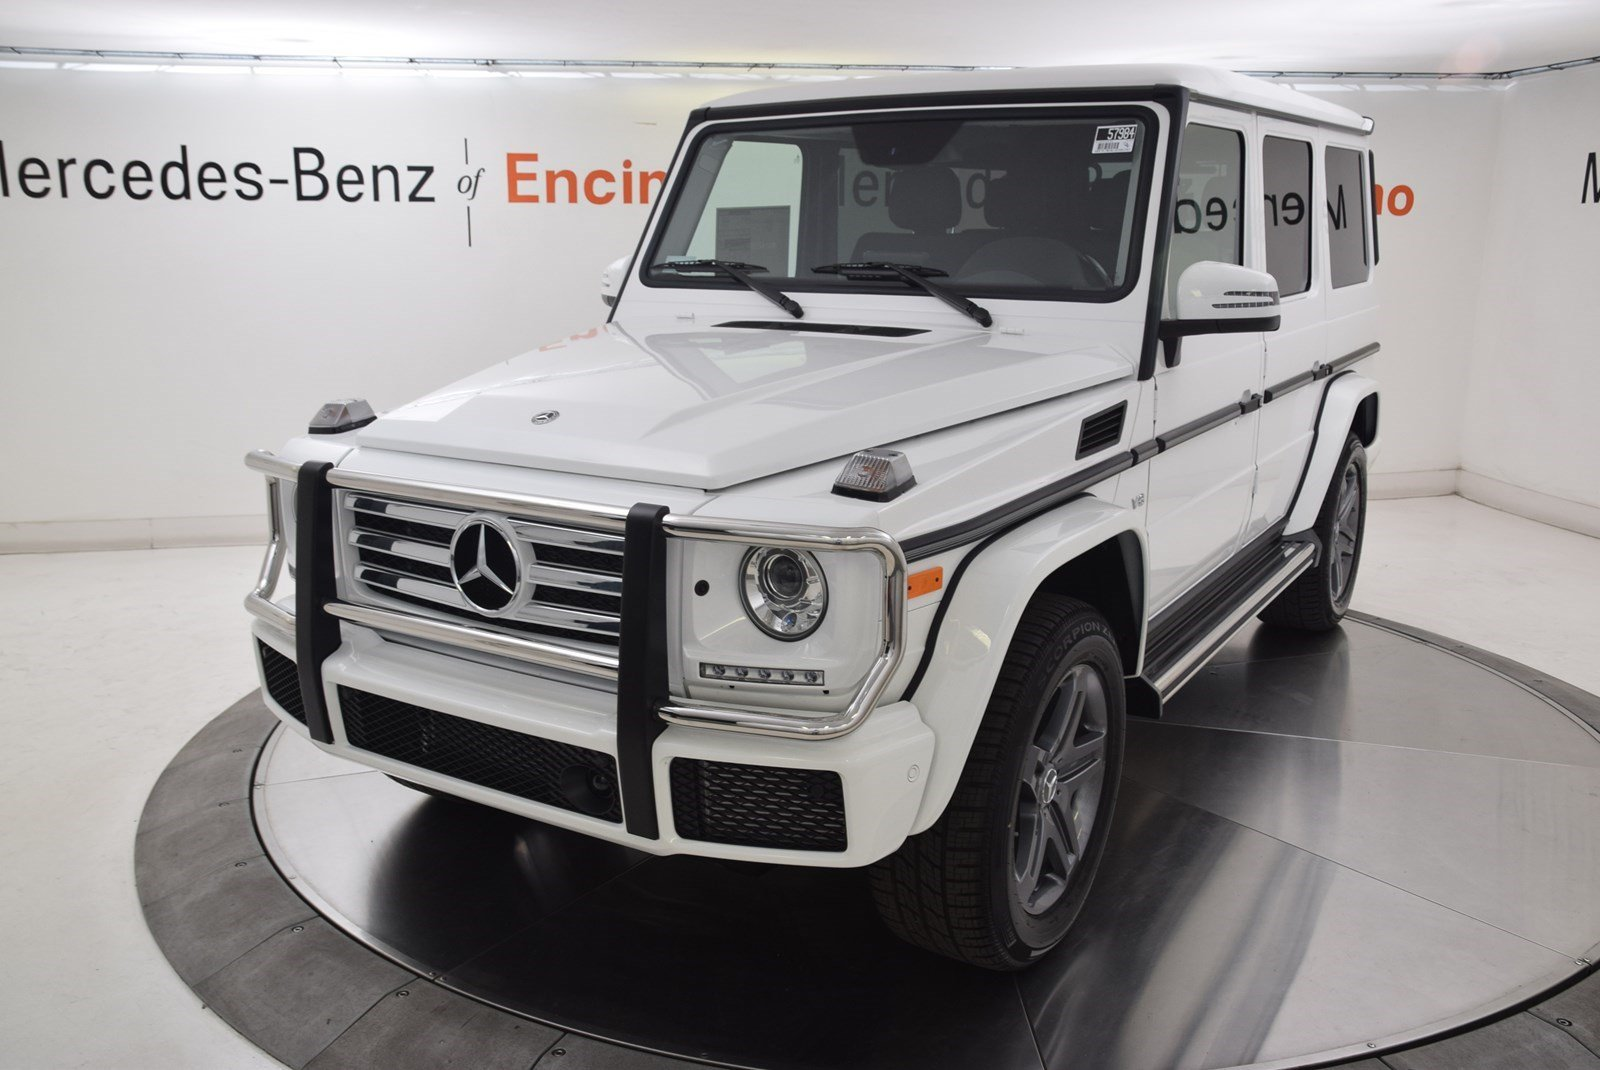 new 2018 mercedes benz g class g 550 suv in encino 57984 mercedes benz of encino. Black Bedroom Furniture Sets. Home Design Ideas